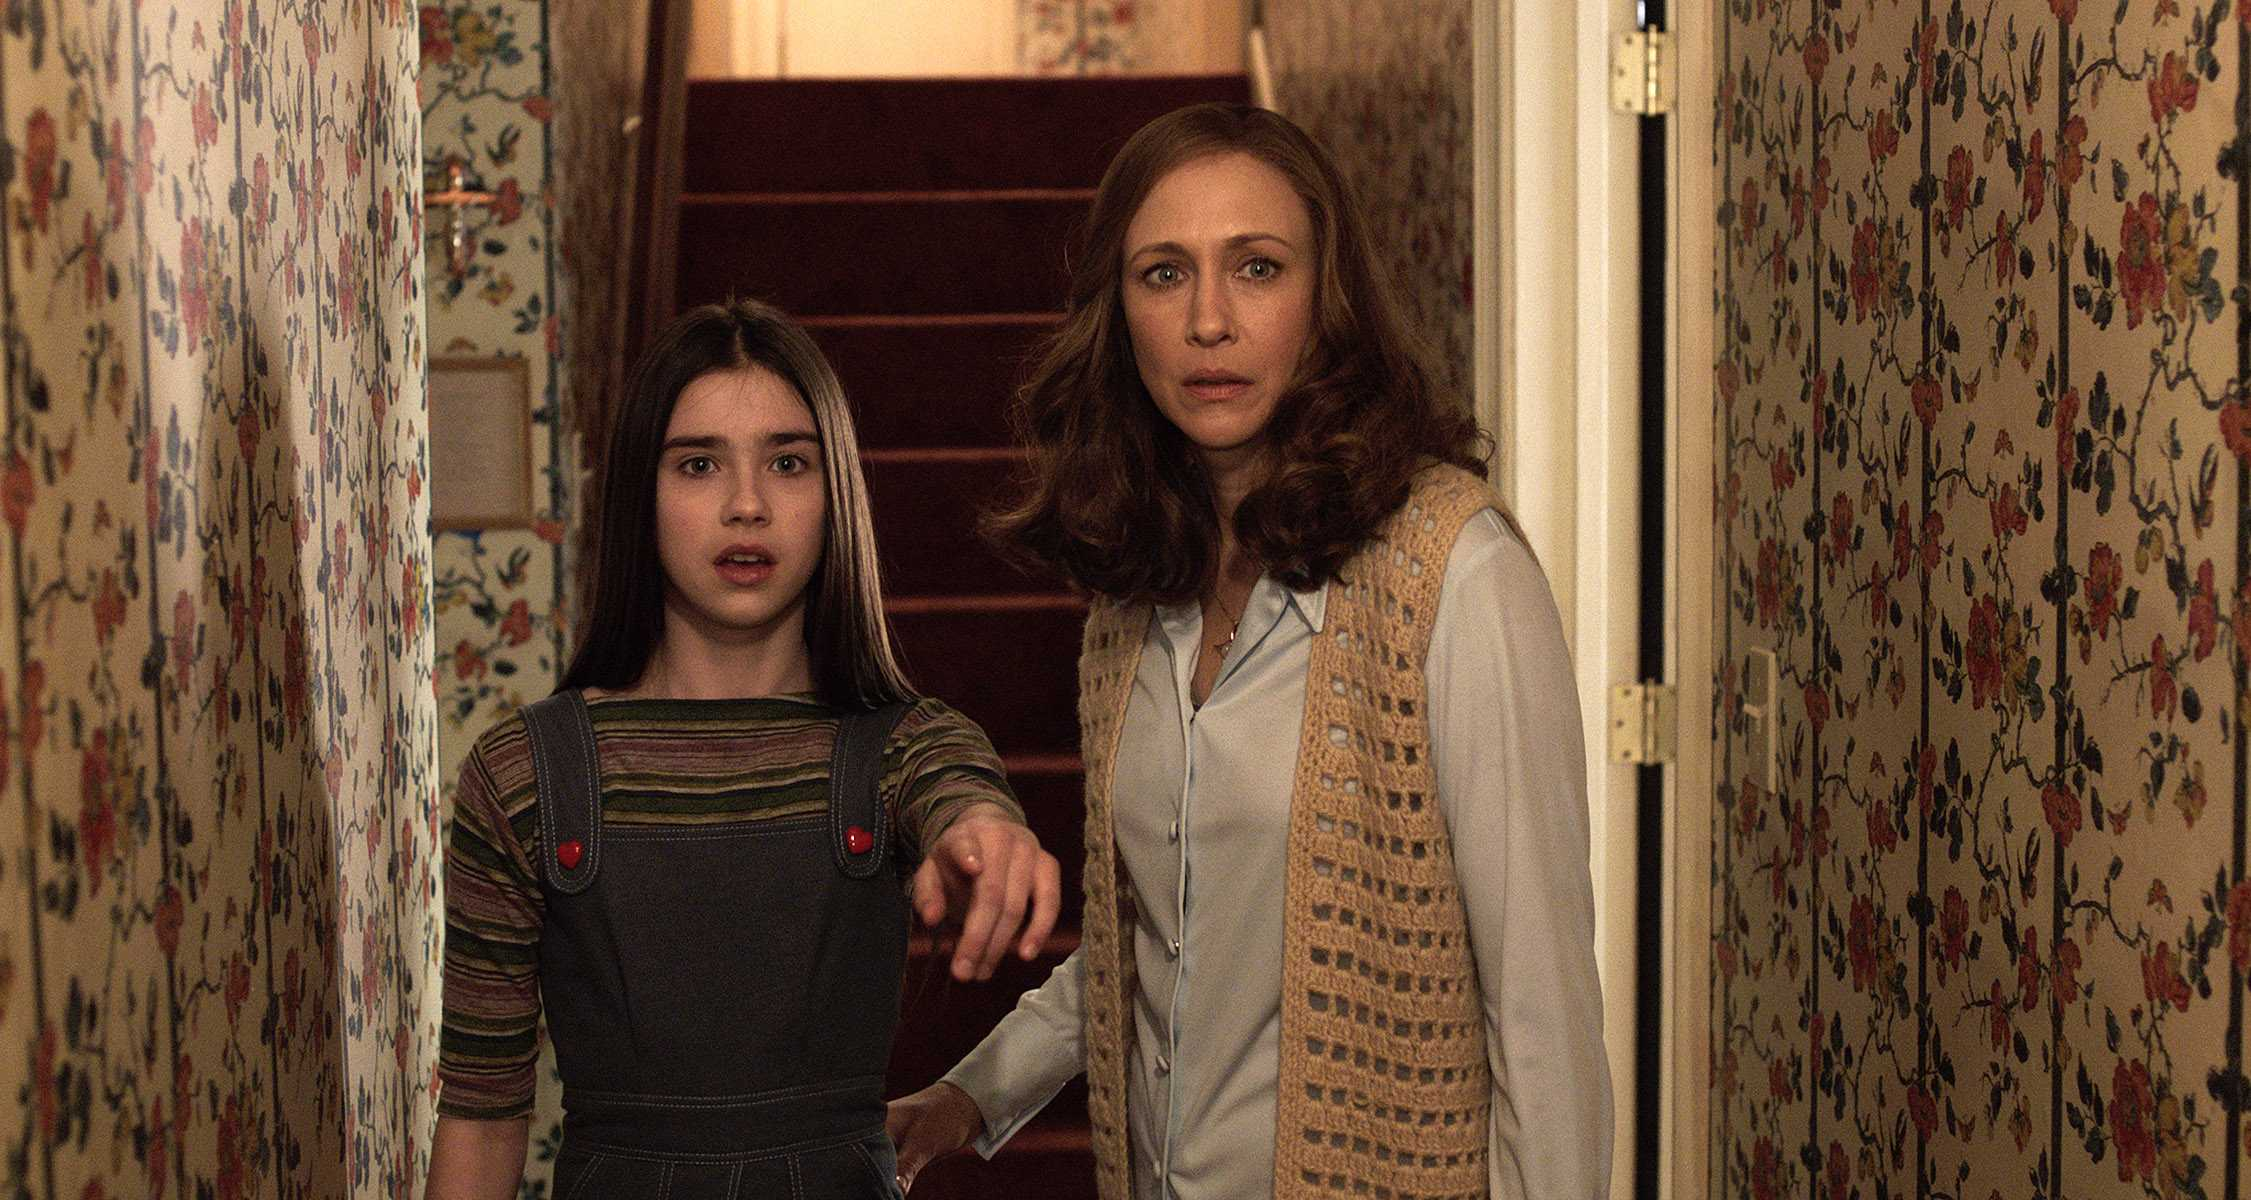 Sterling Jerins (left) plays Judy Warren, while Vera Farmiga plays Lorraine Warren in the new thriller